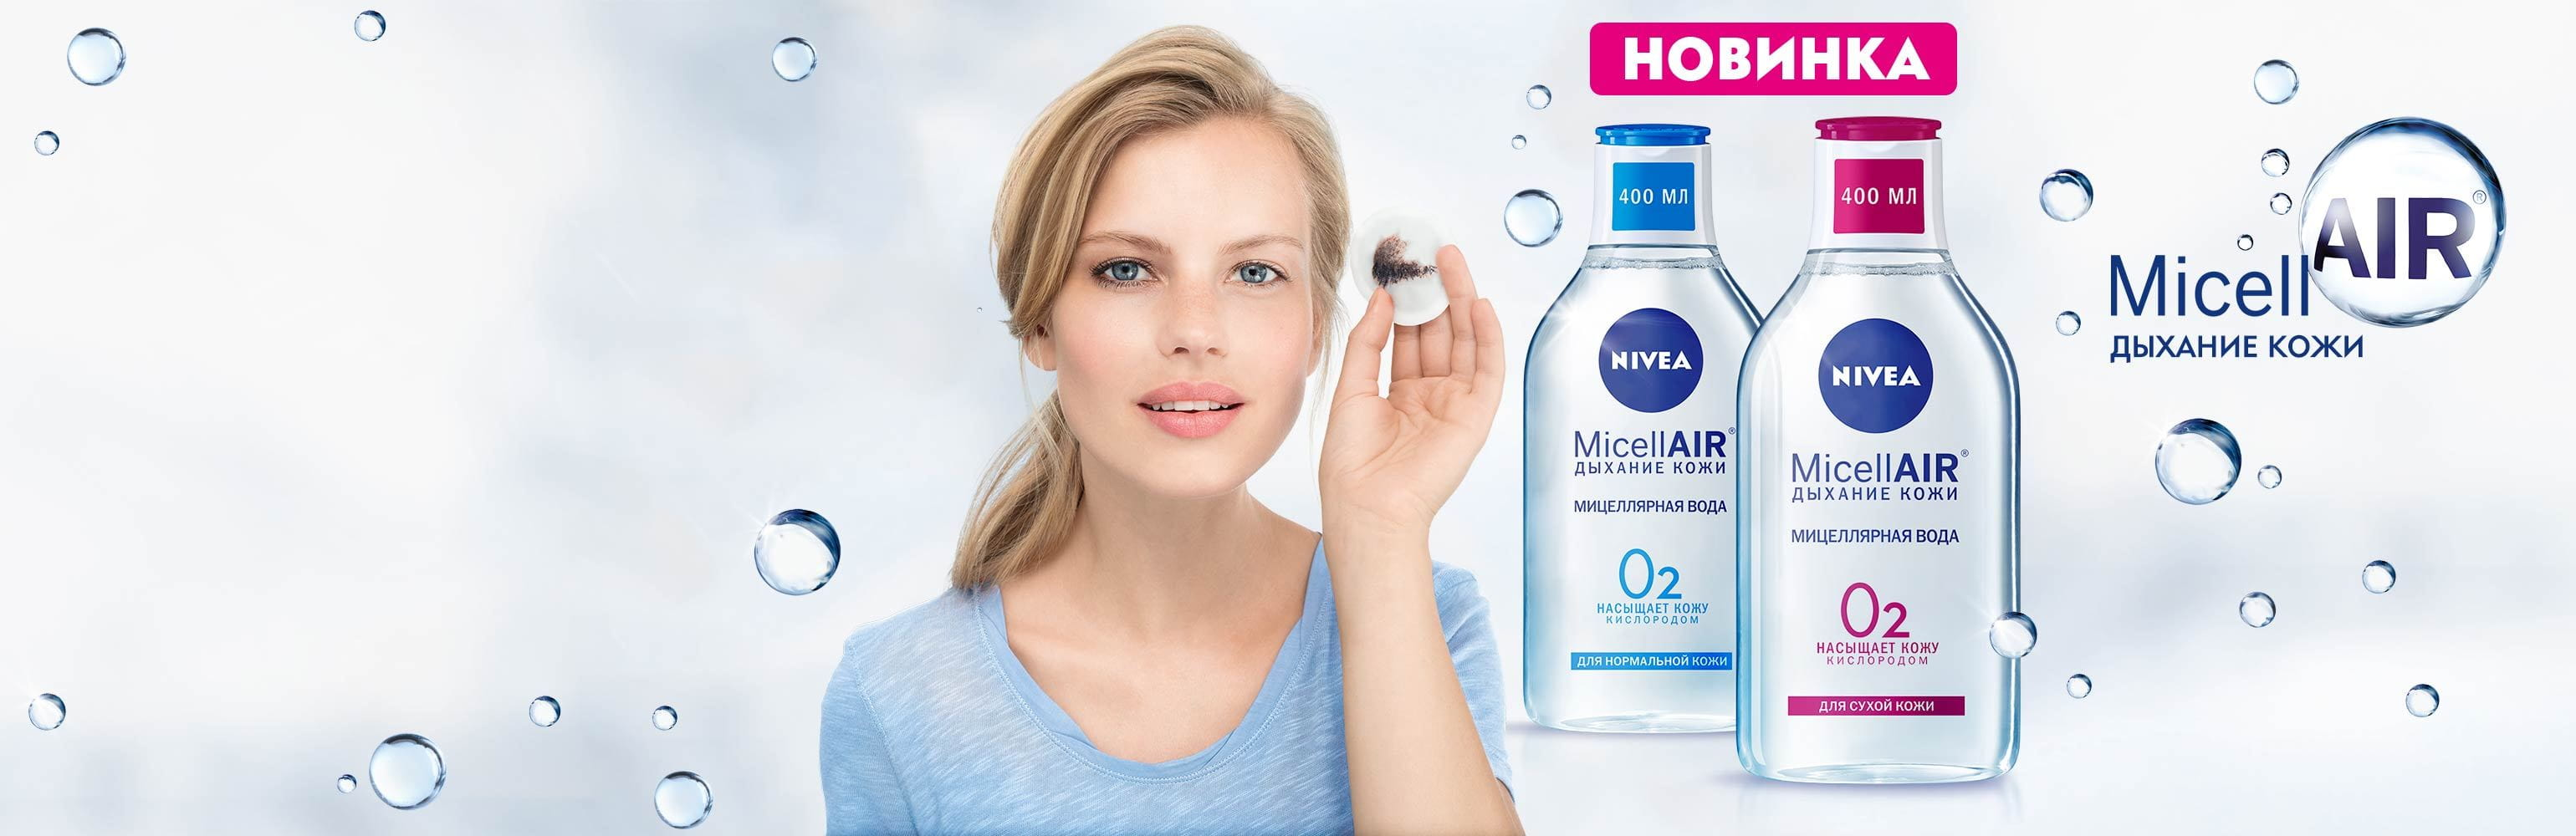 woman removing make up with micellar water